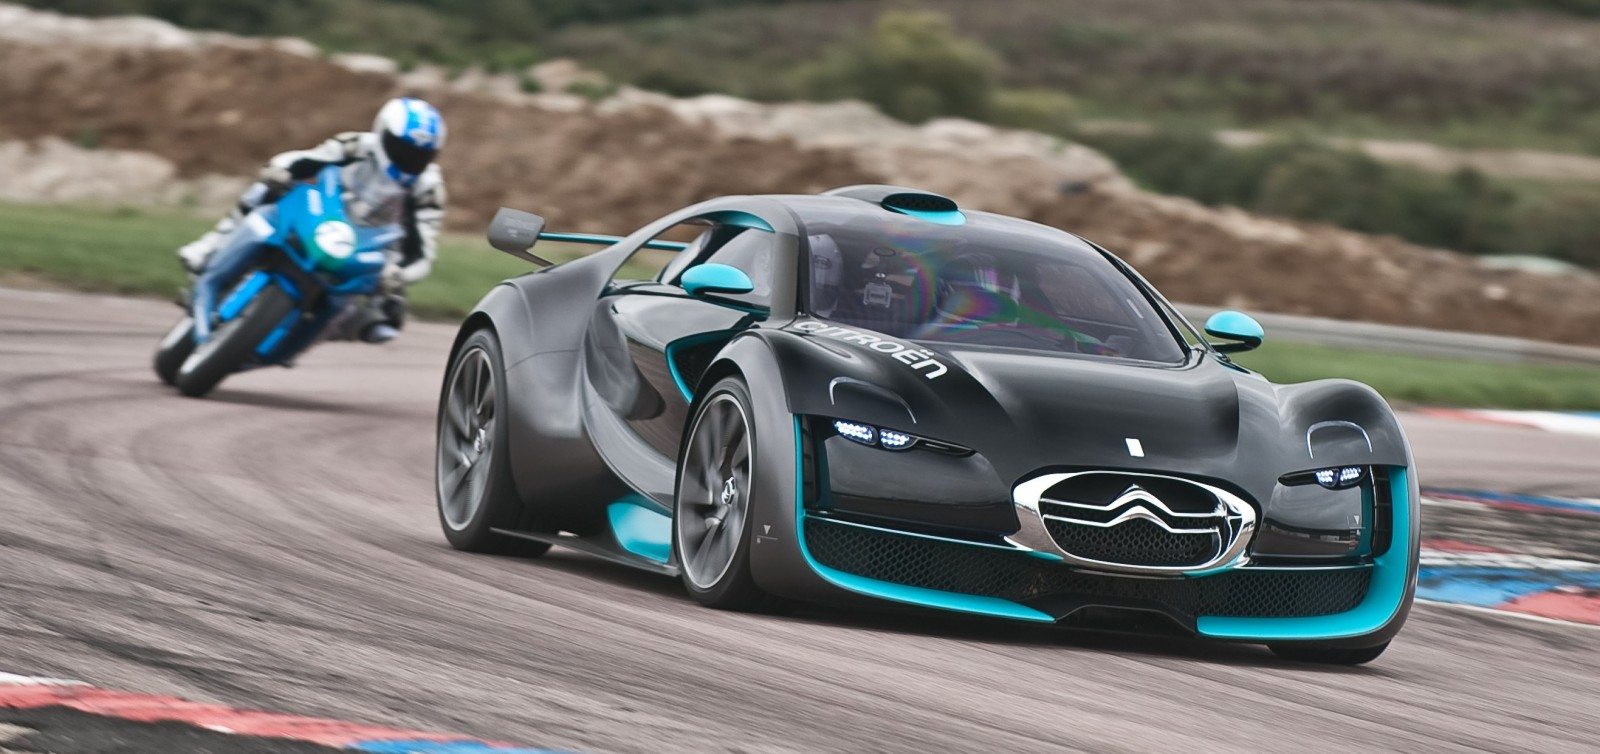 Concept Flashback - 2010 Citroen Survolt 75